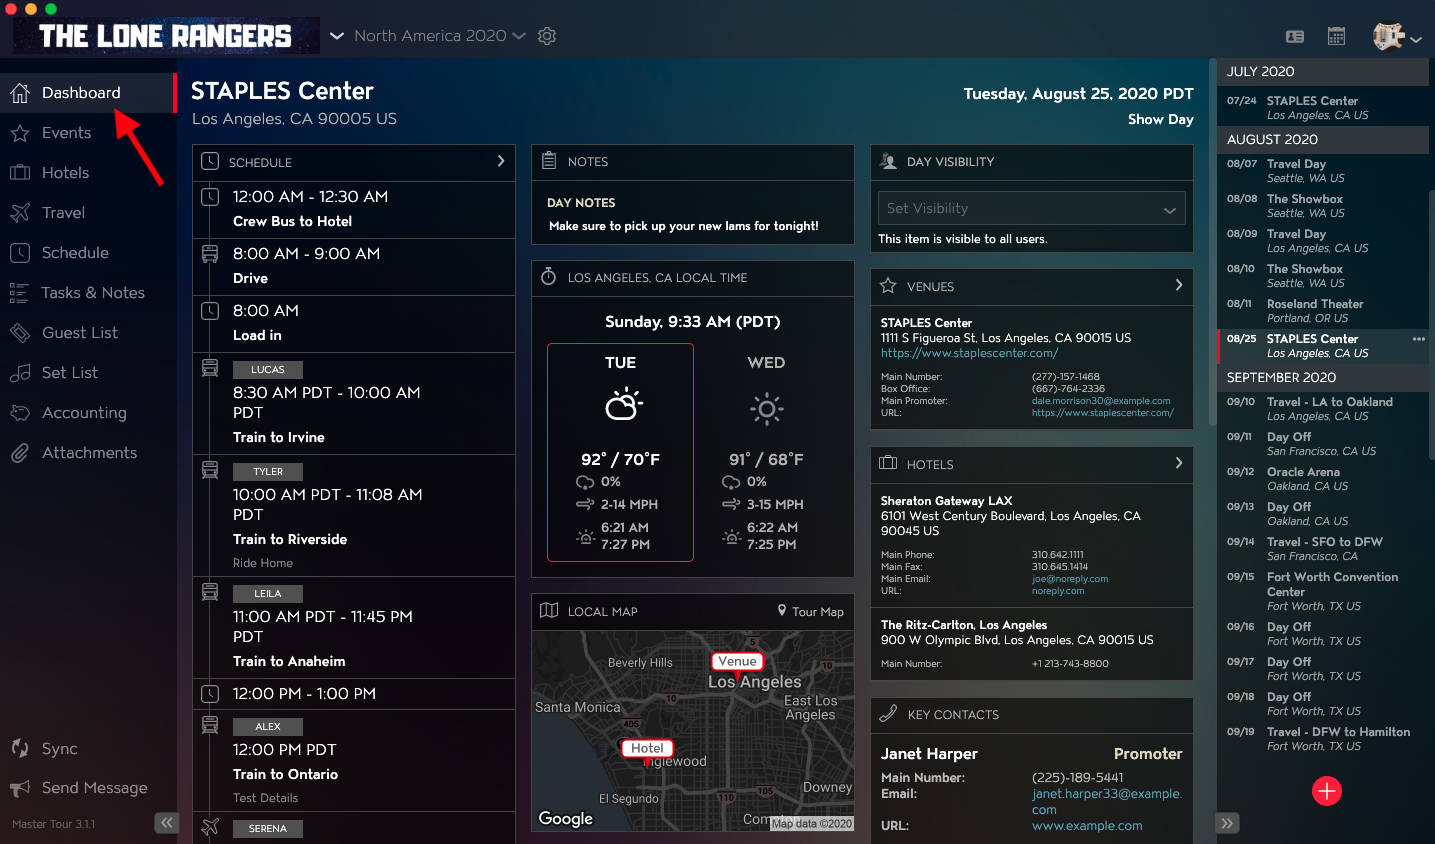 Key Contacts Dashboard